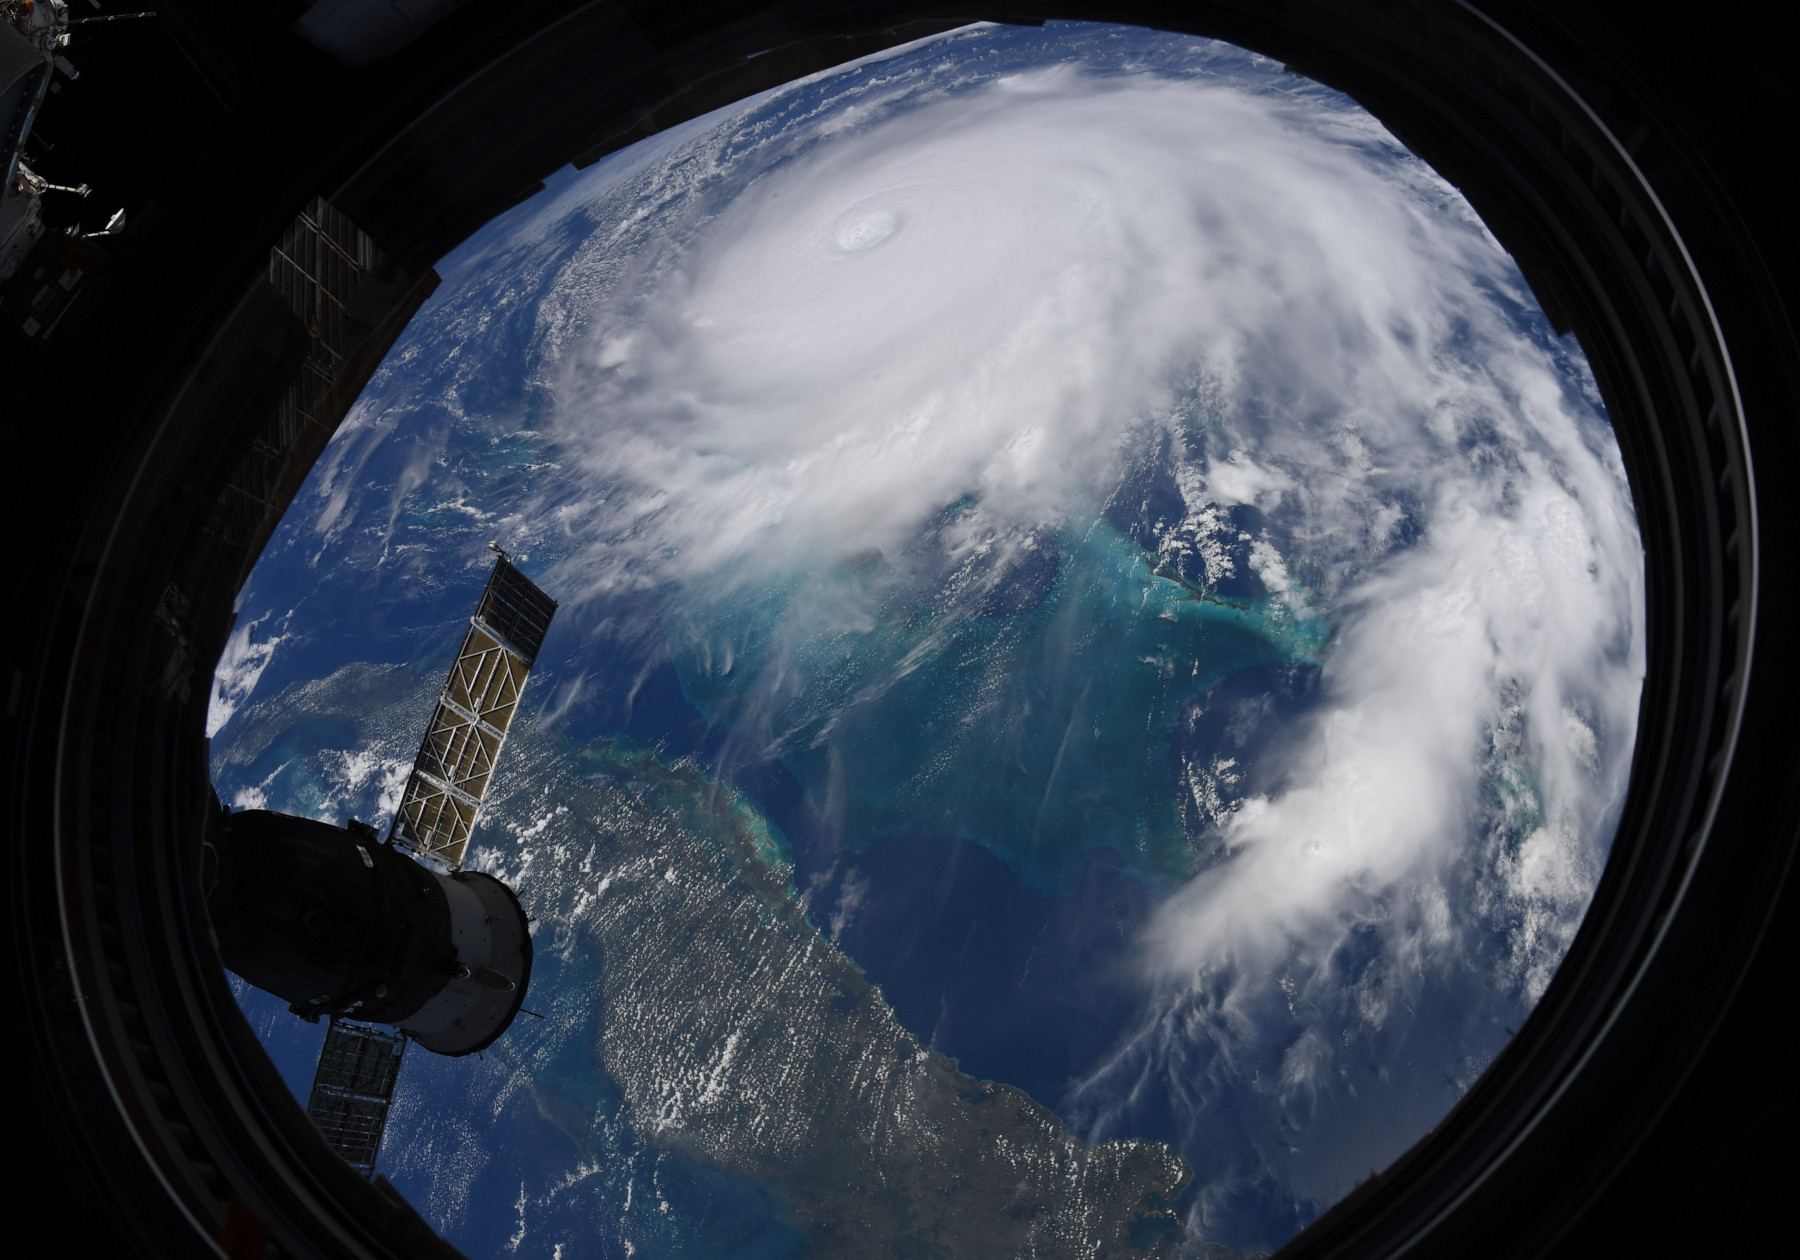 After inflicting `extreme damage` on Bahamas, Hurricane Dorian on path to Florida